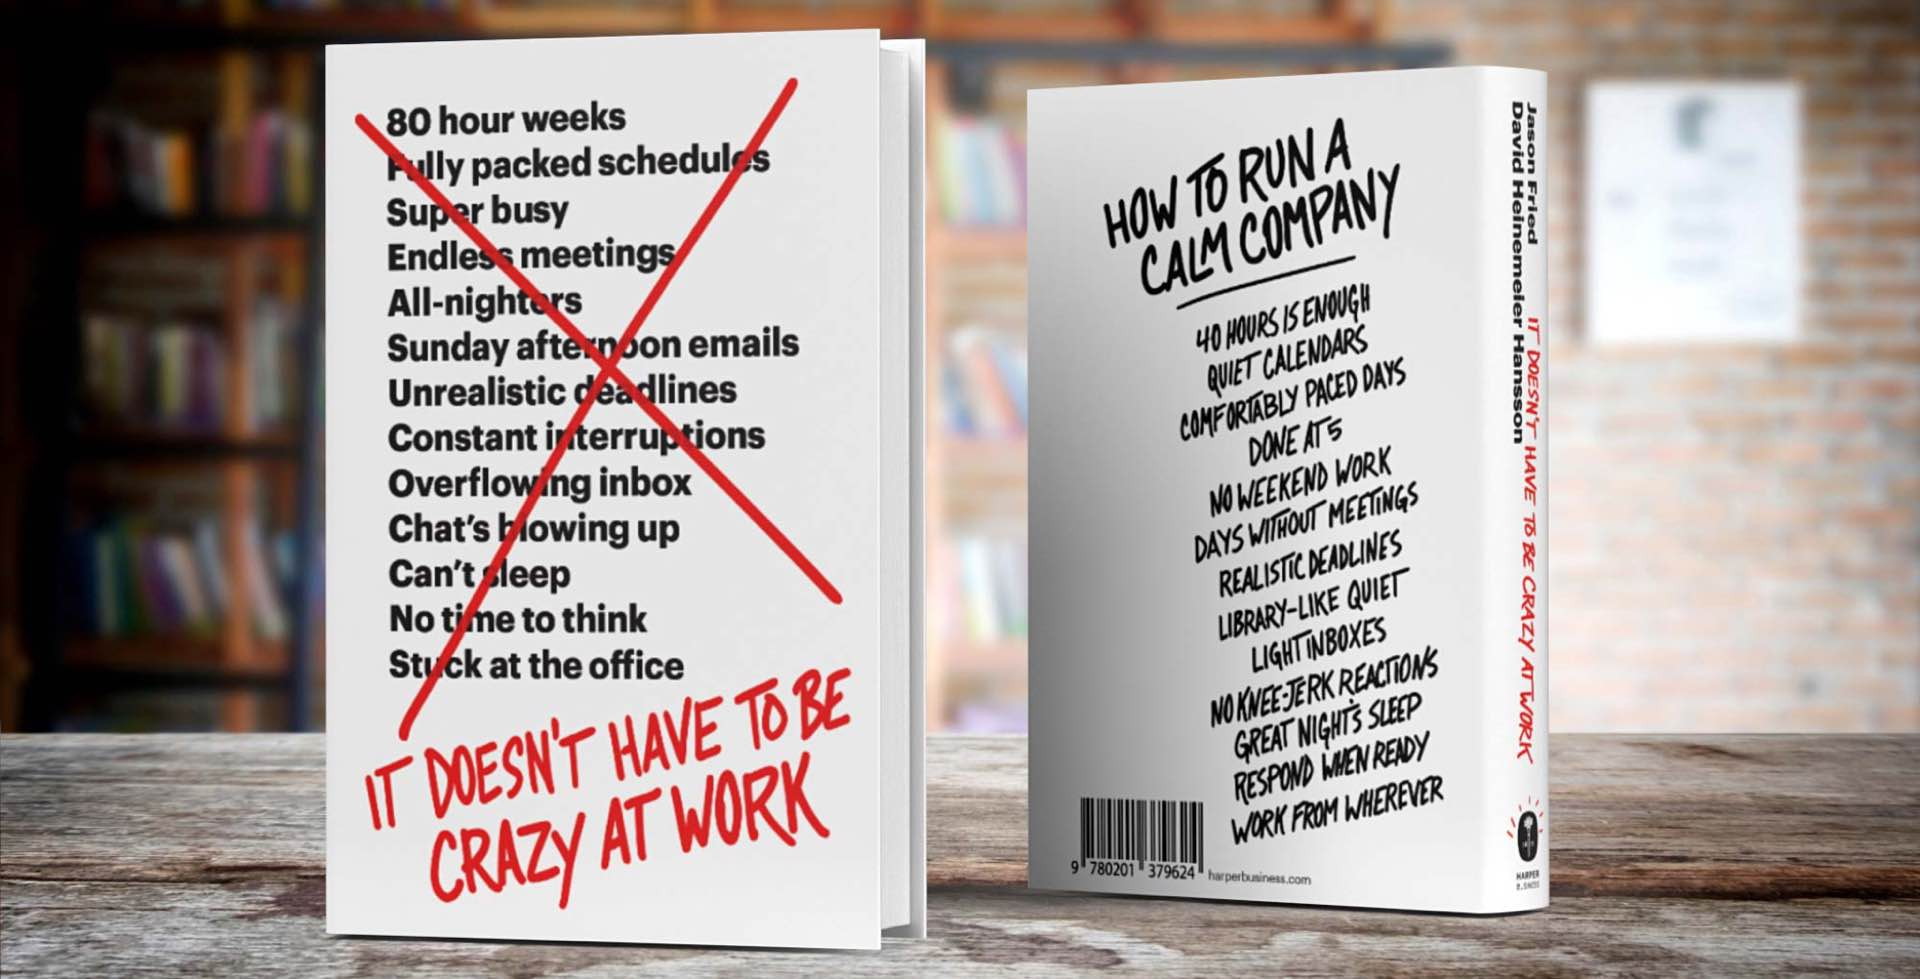 It Doesnt Have to Be Crazy at Work by Jason Fried and David Heinemeier Hansson.